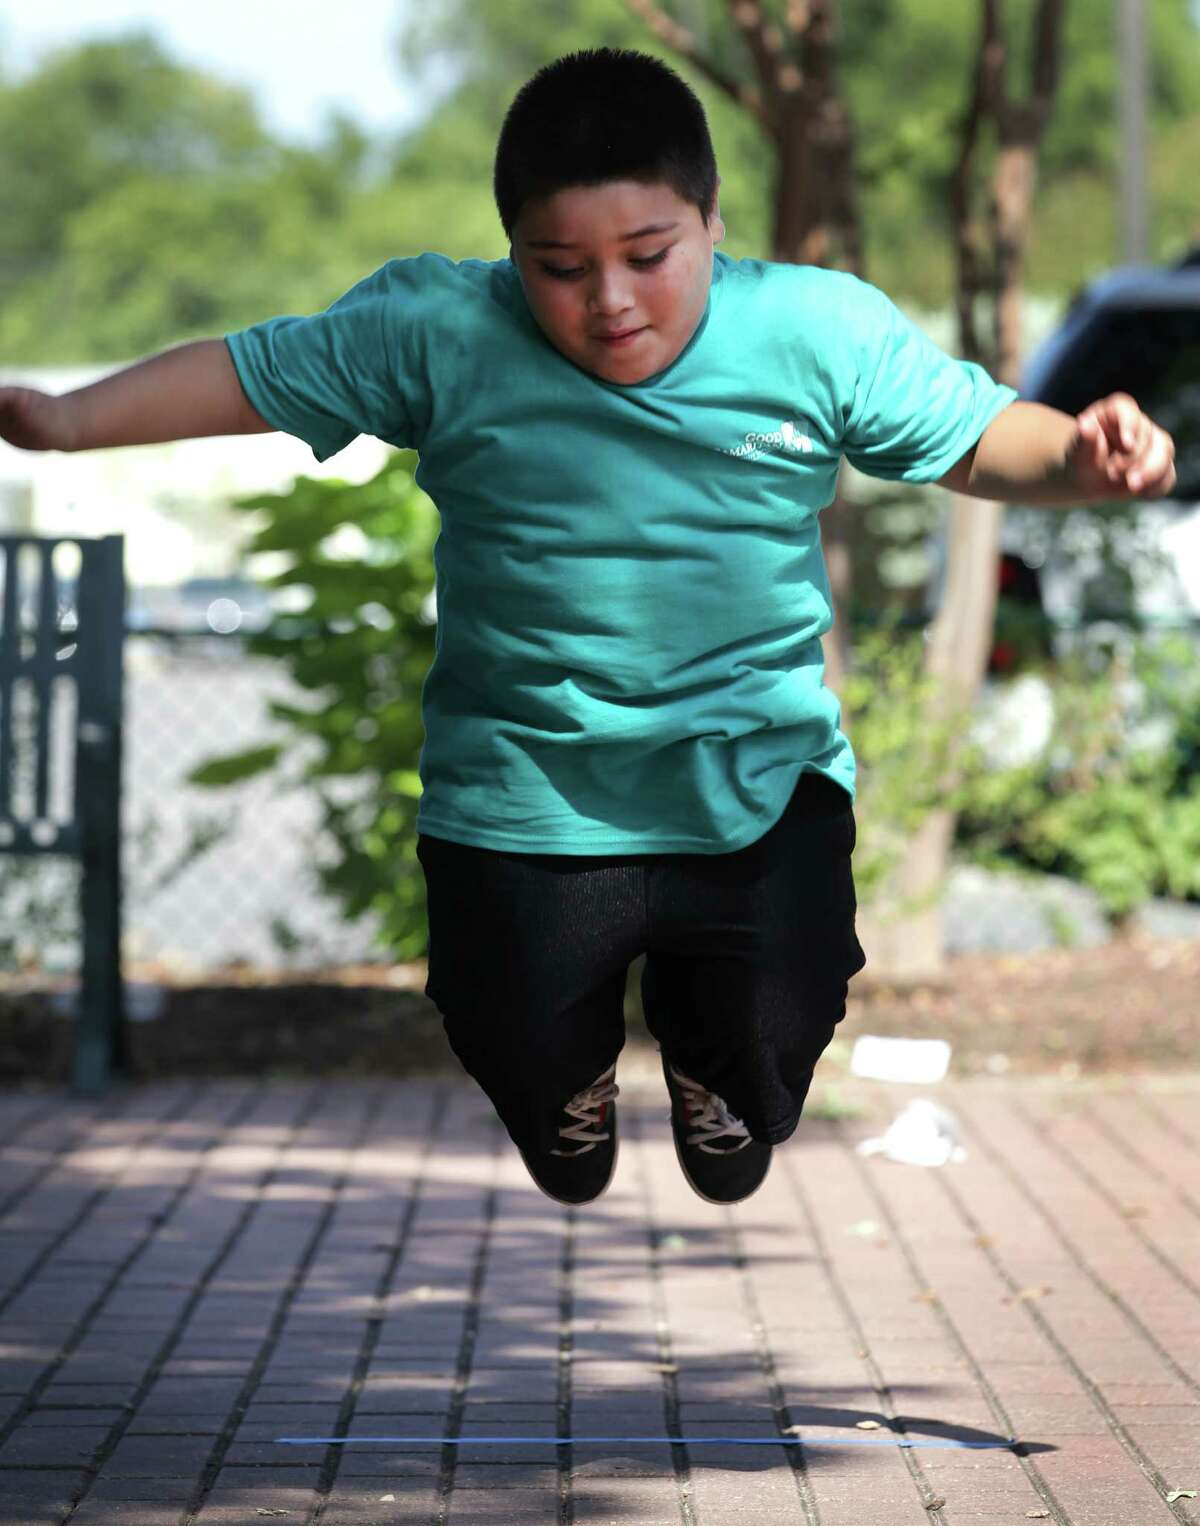 """Jose Ramon, 7 takes a try in the long jump at Camp """"Healthy Choices for Kids"""", sponsored by the nursing department at UT Health Science Center, during Kid's Olympics on the final day of the camp at Good Samaritan Community Services. Friday, Aug. 3, 2012."""